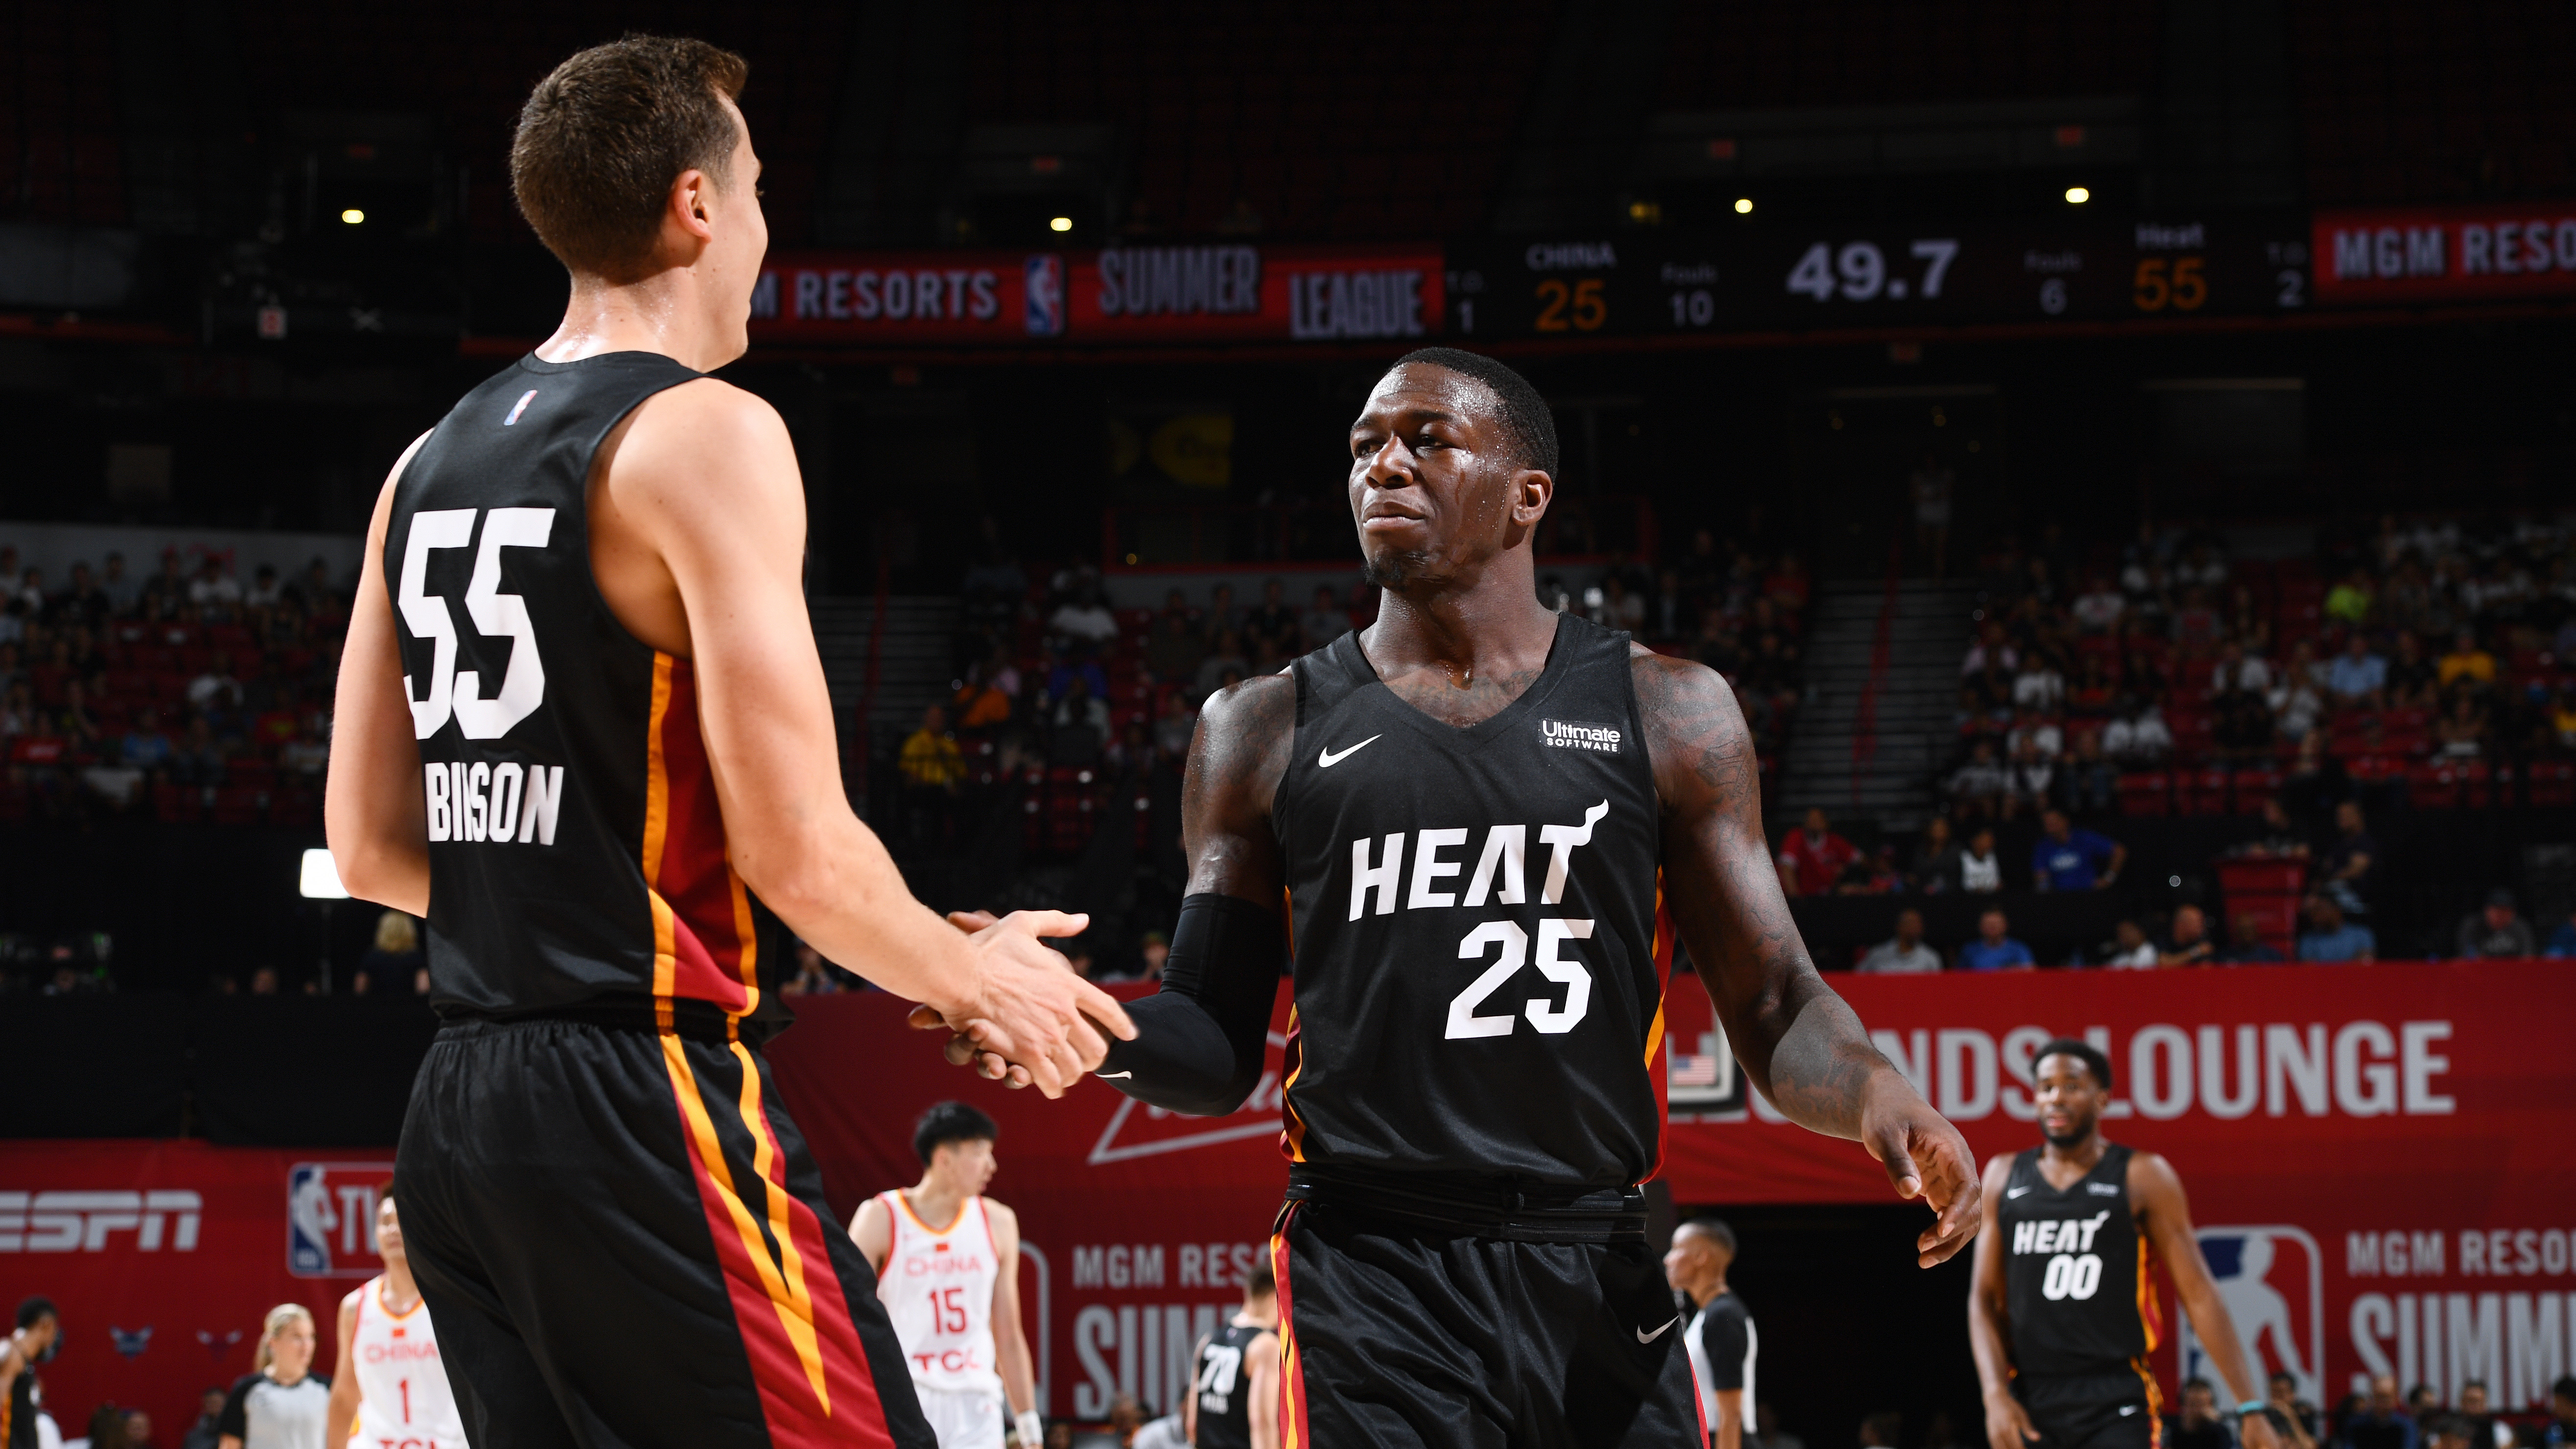 GAME RECAP: Heat 103, China 62